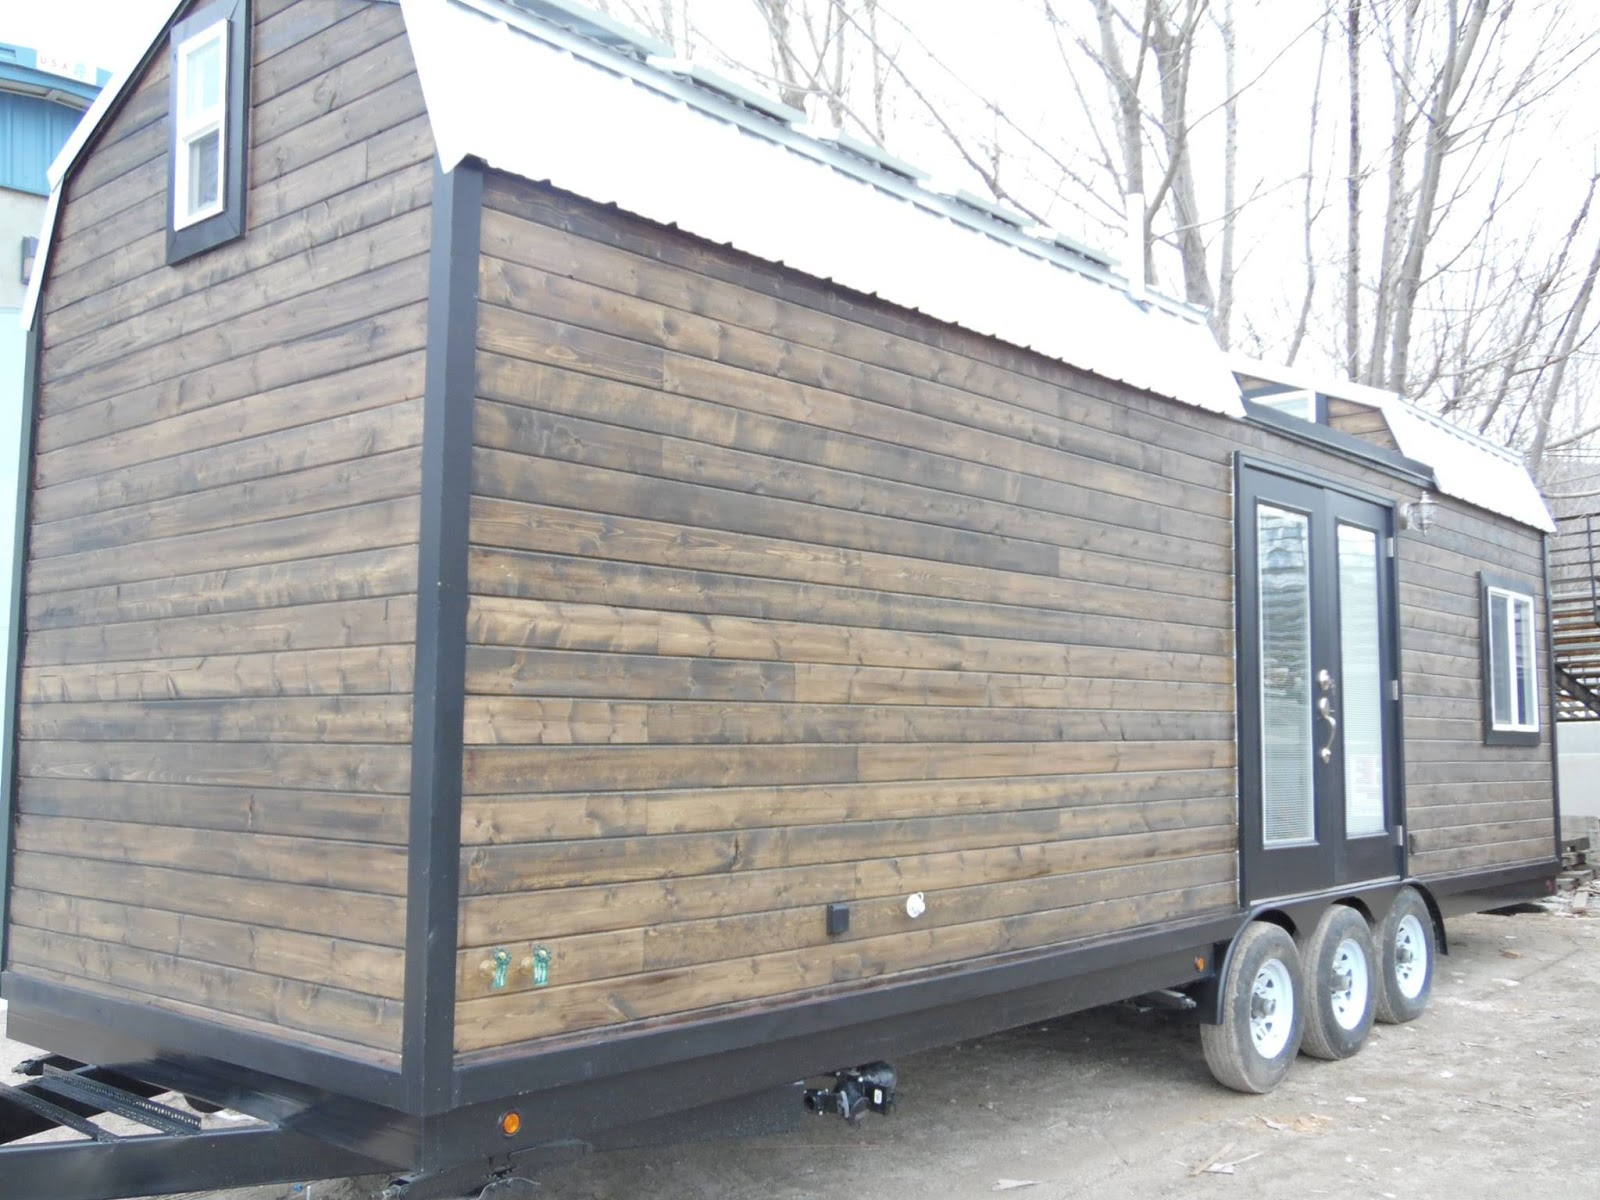 barn style tiny house from upper valley tiny homes tiny house town an error occurred